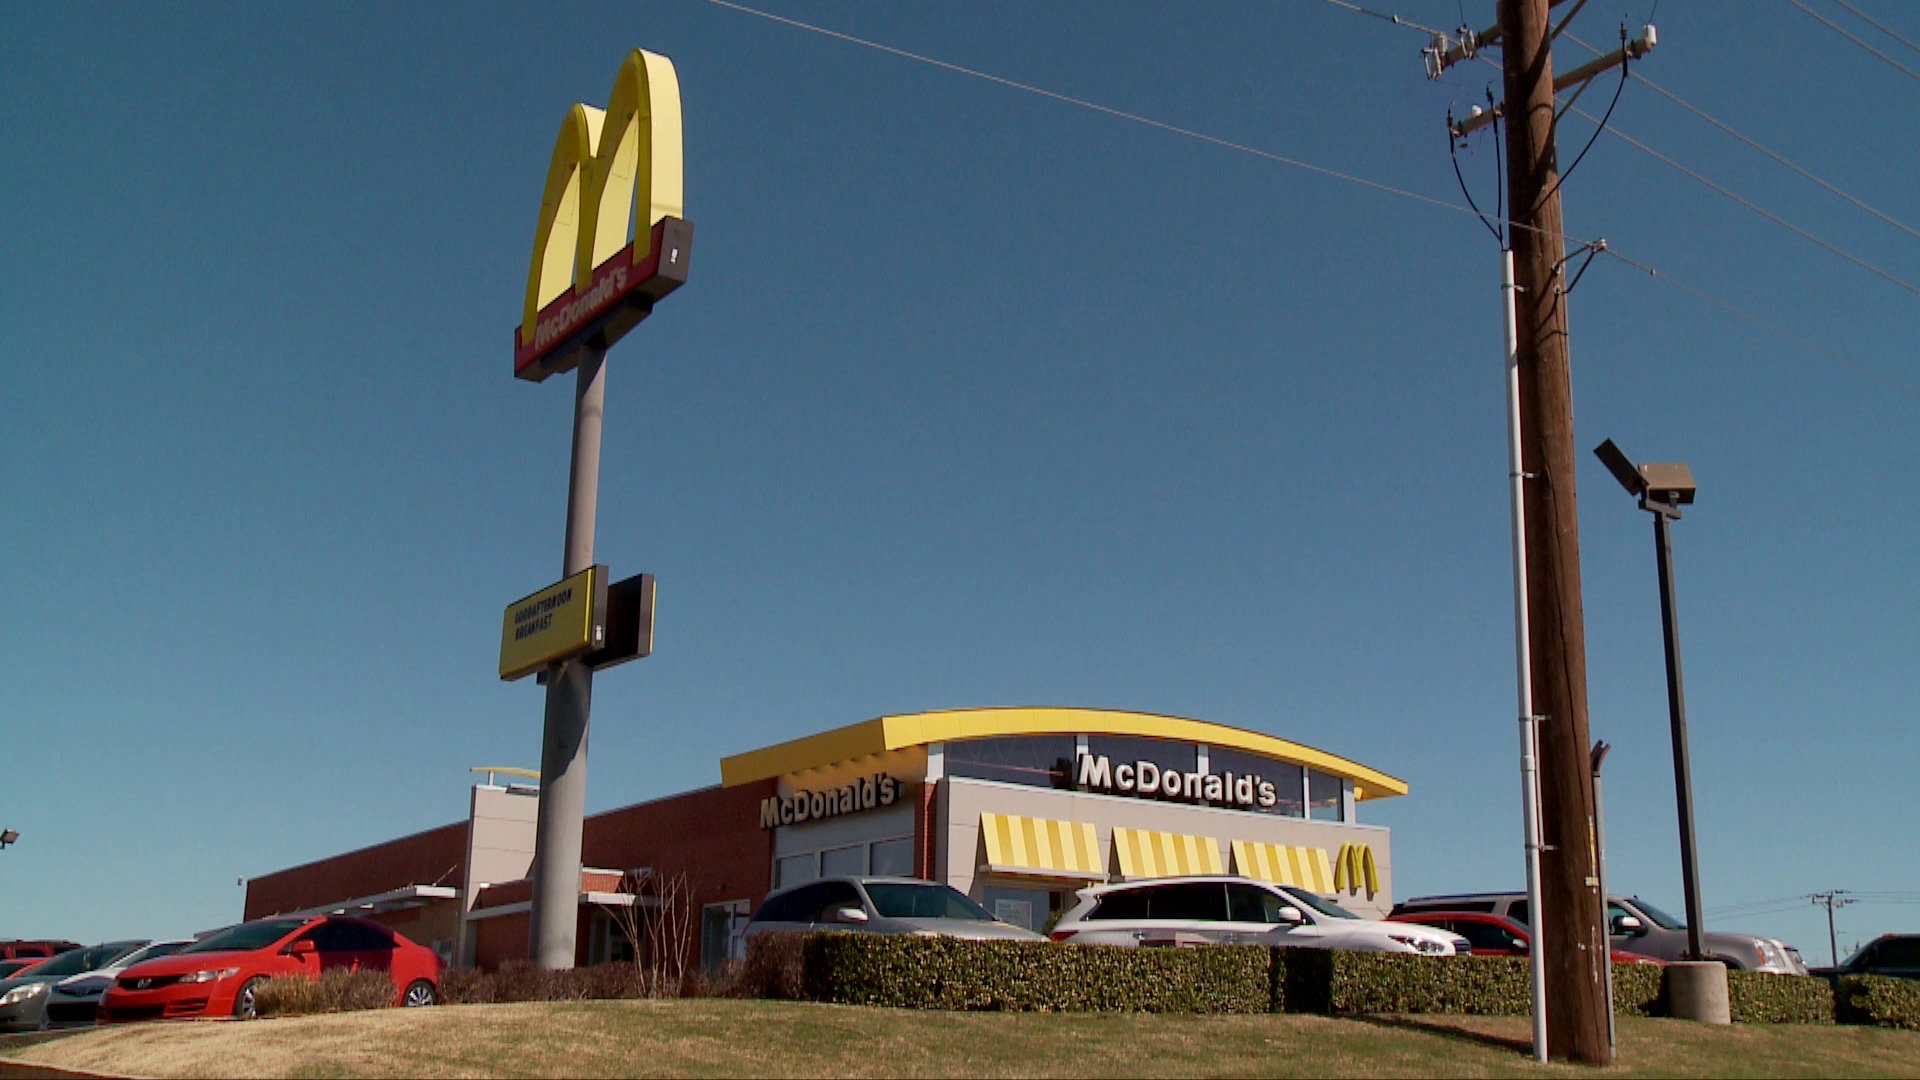 Toddler Finds Syringe in Play Area of Oklahoma McDonald's